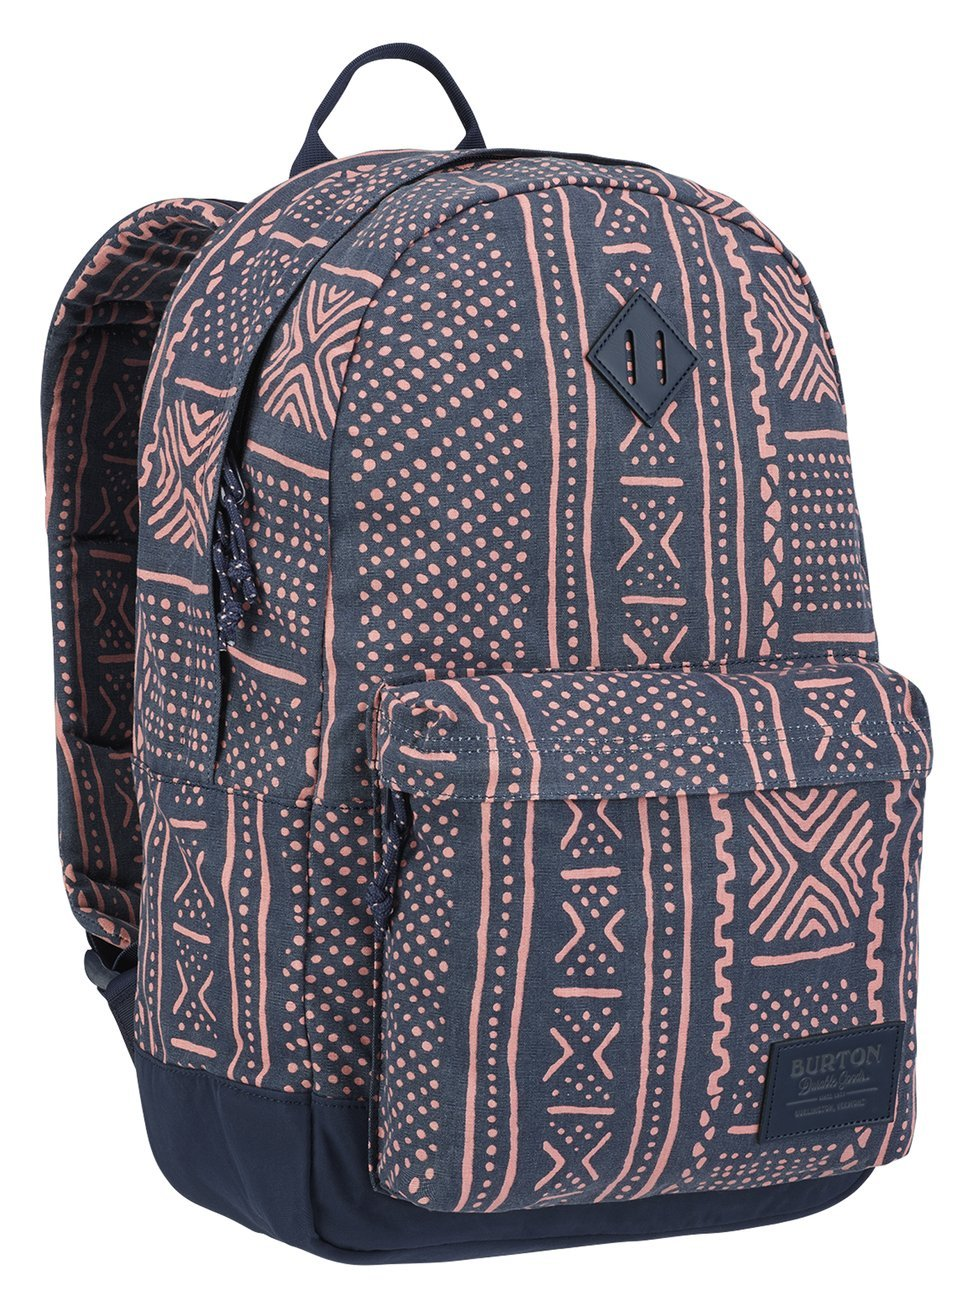 Burton Kettle backpack, Mood Indigo Bambara Canvas, One Size